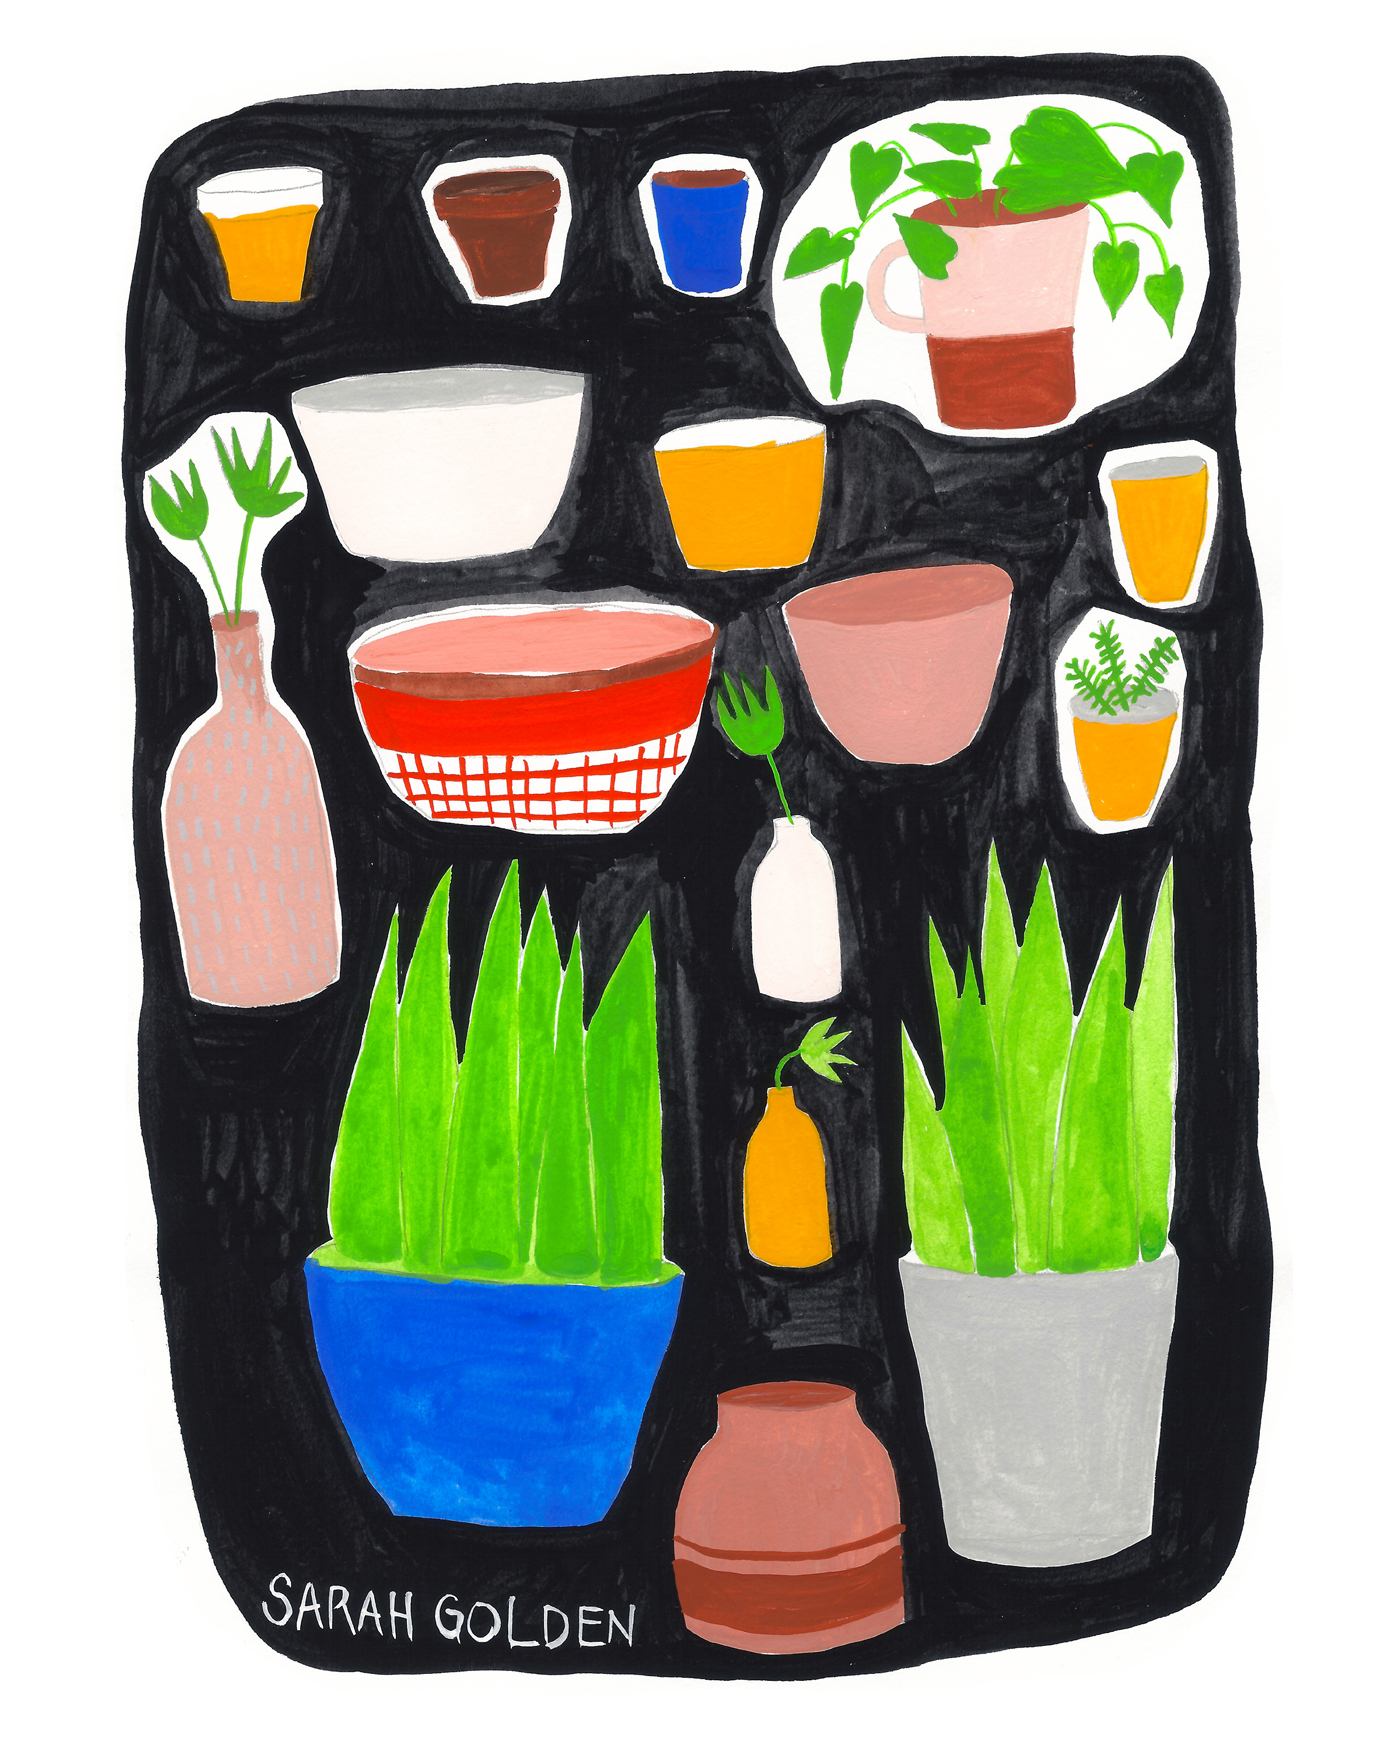 Plants and Pots by Sarah Golden